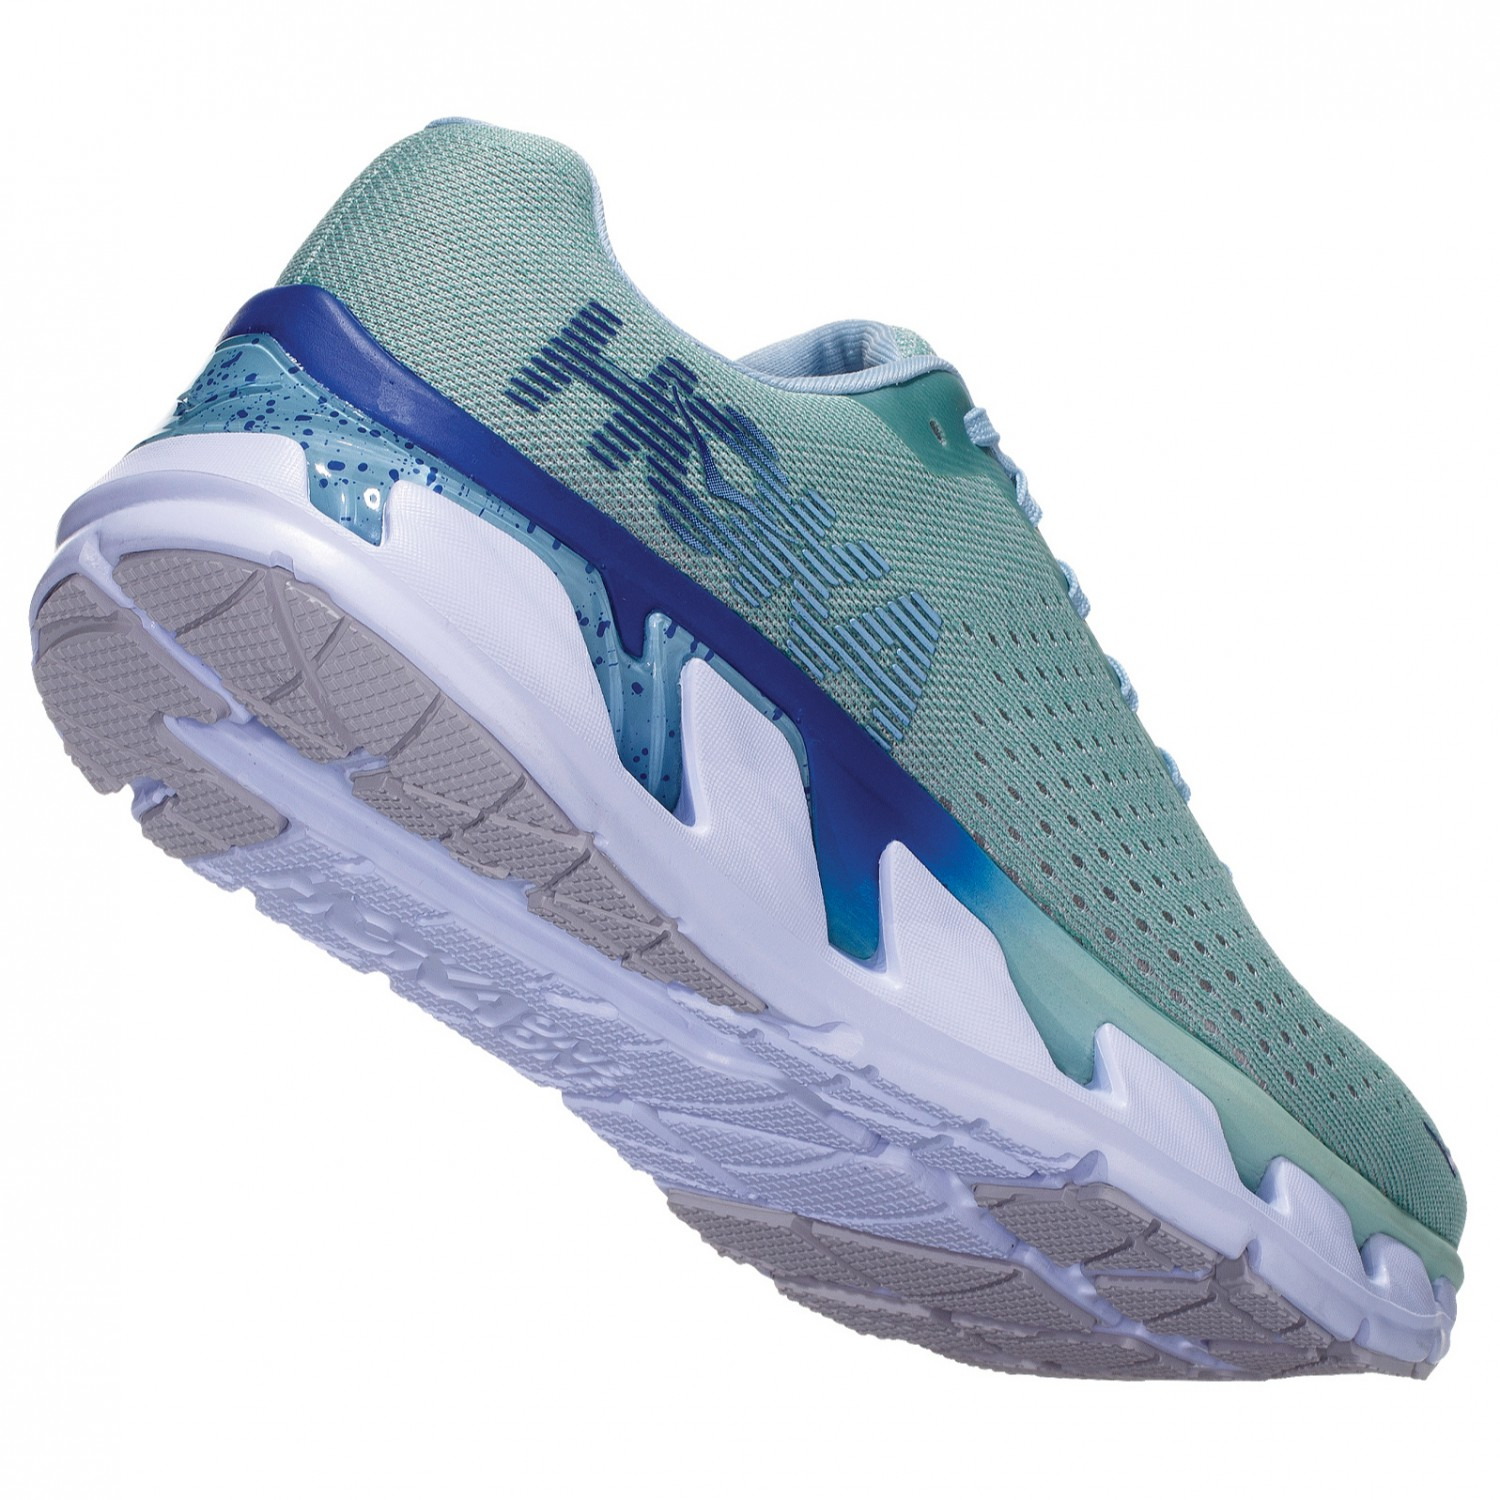 hoka one one elevon running shoes womens free uk